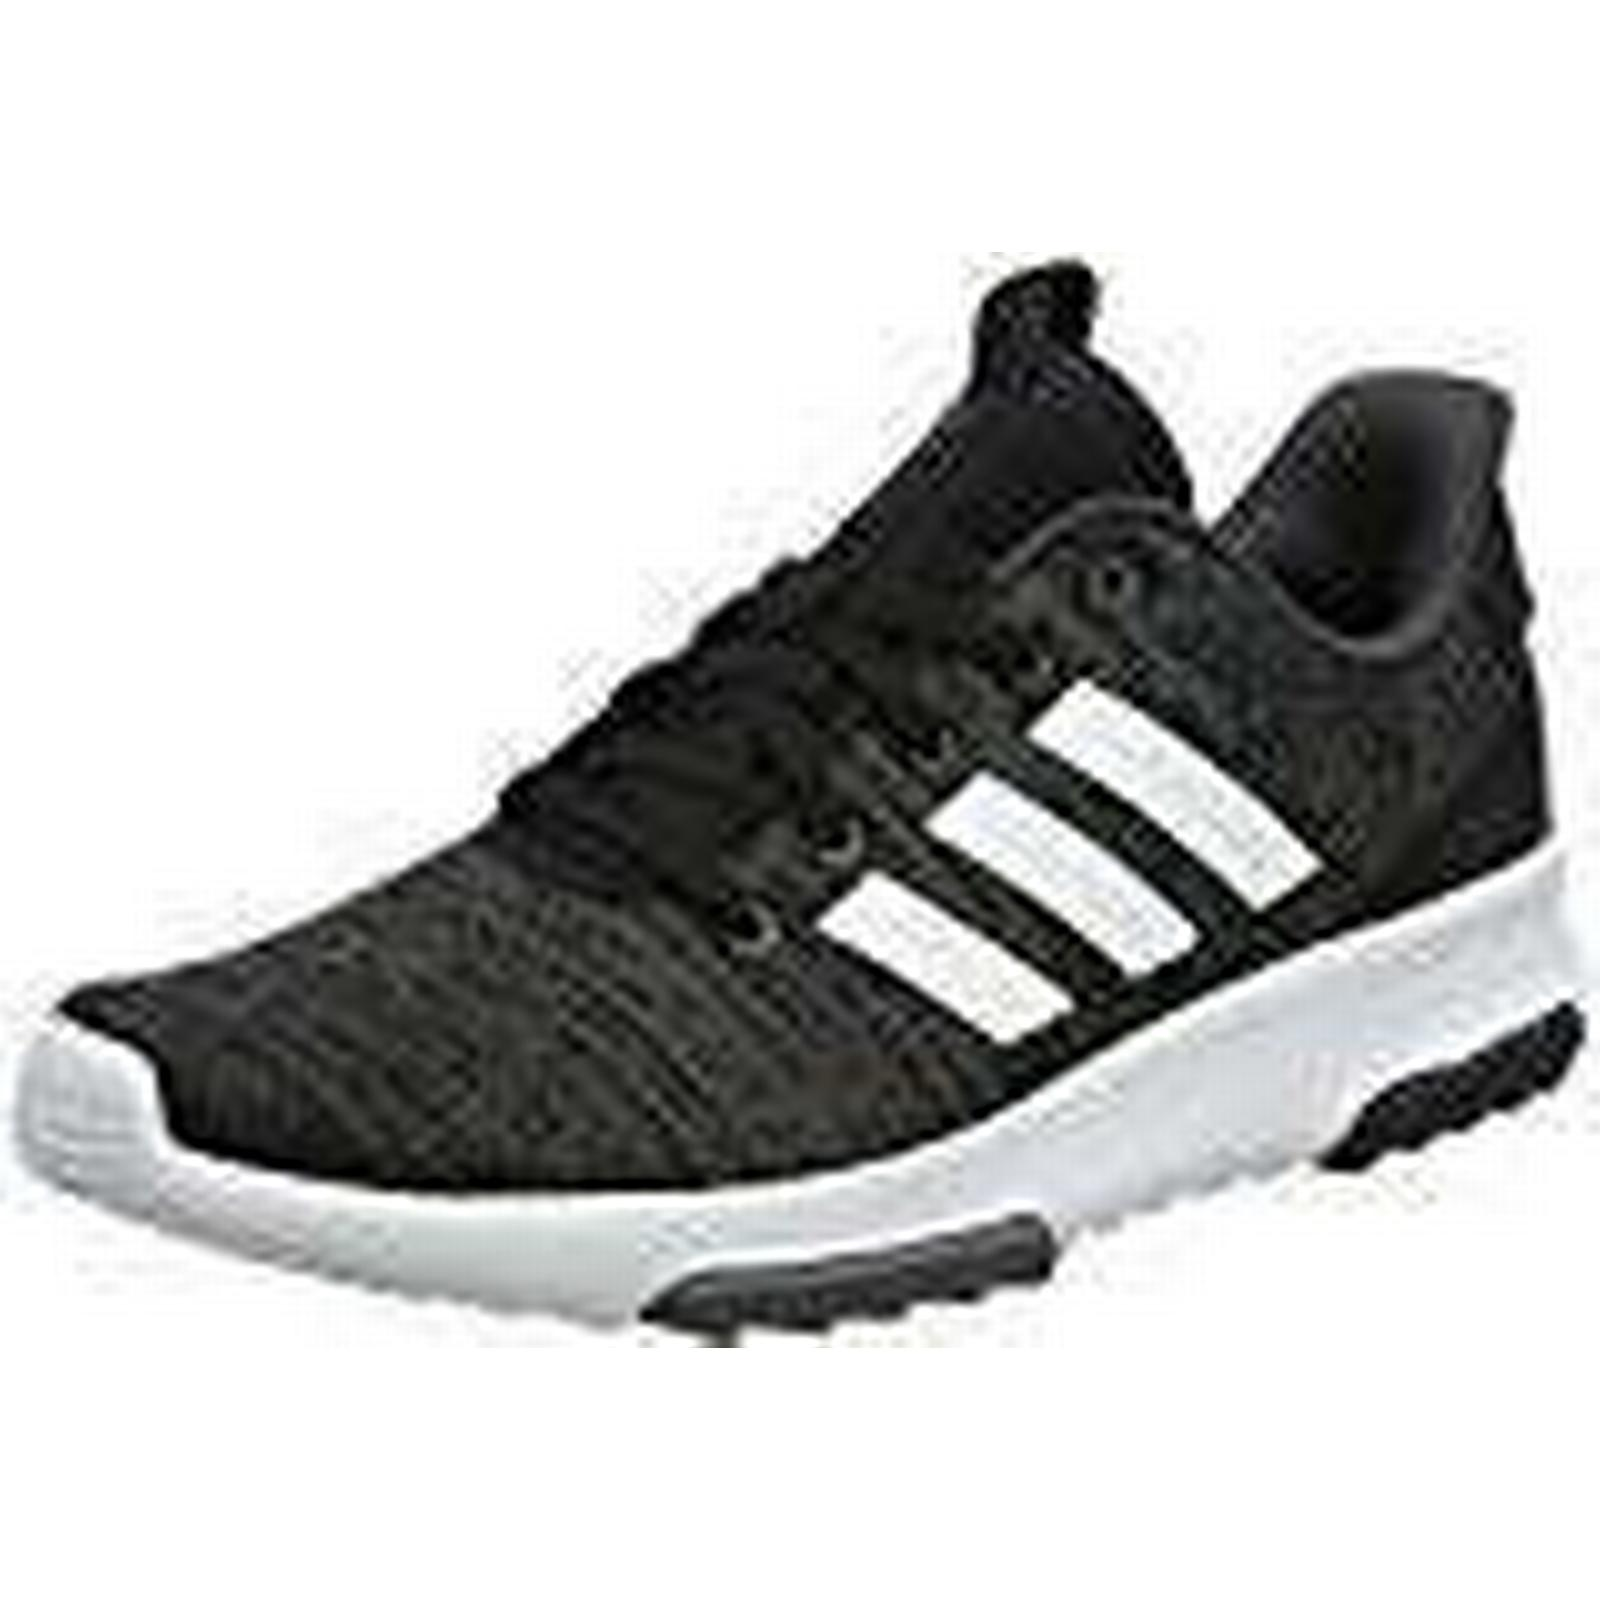 Adidas Men's Cloudfoam Racer TR Running Shoes, (Core Black/Footwear 2/3 White/Carbon), 7 UK 40 2/3 Black/Footwear EU 6947d2